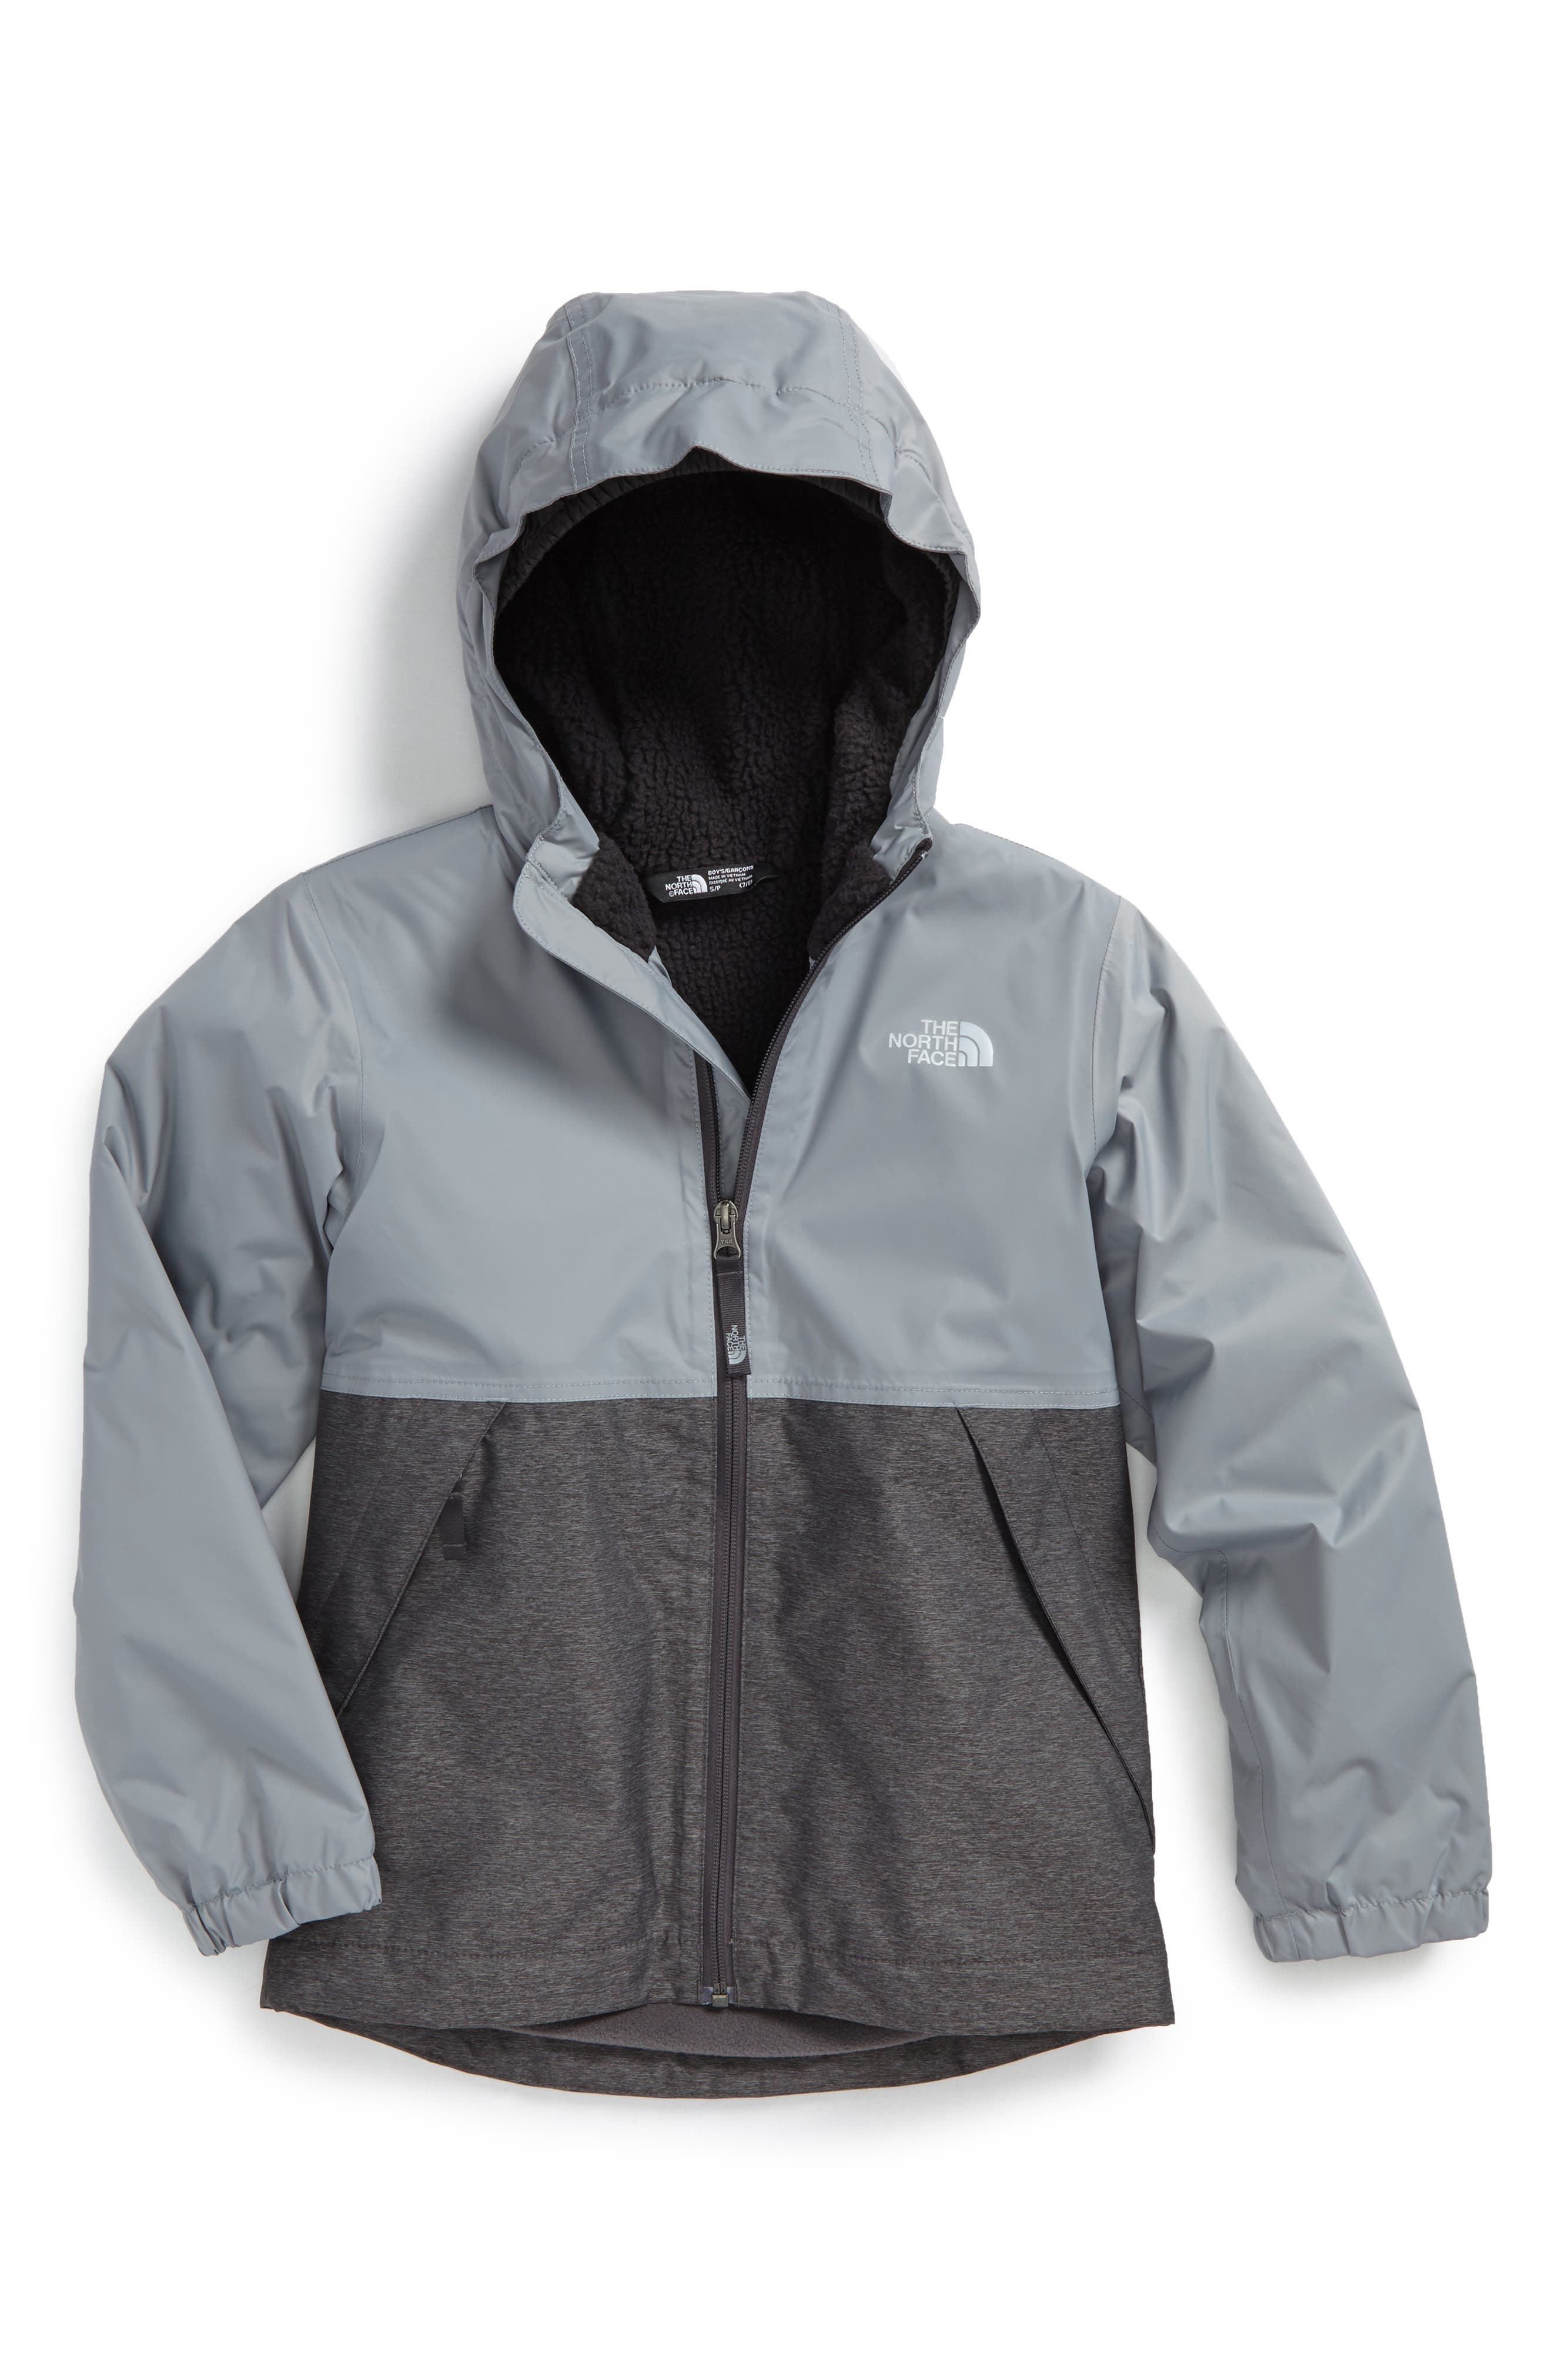 Main Image - The North Face Warm Storm Hooded Waterproof Jacket (Big Boys)